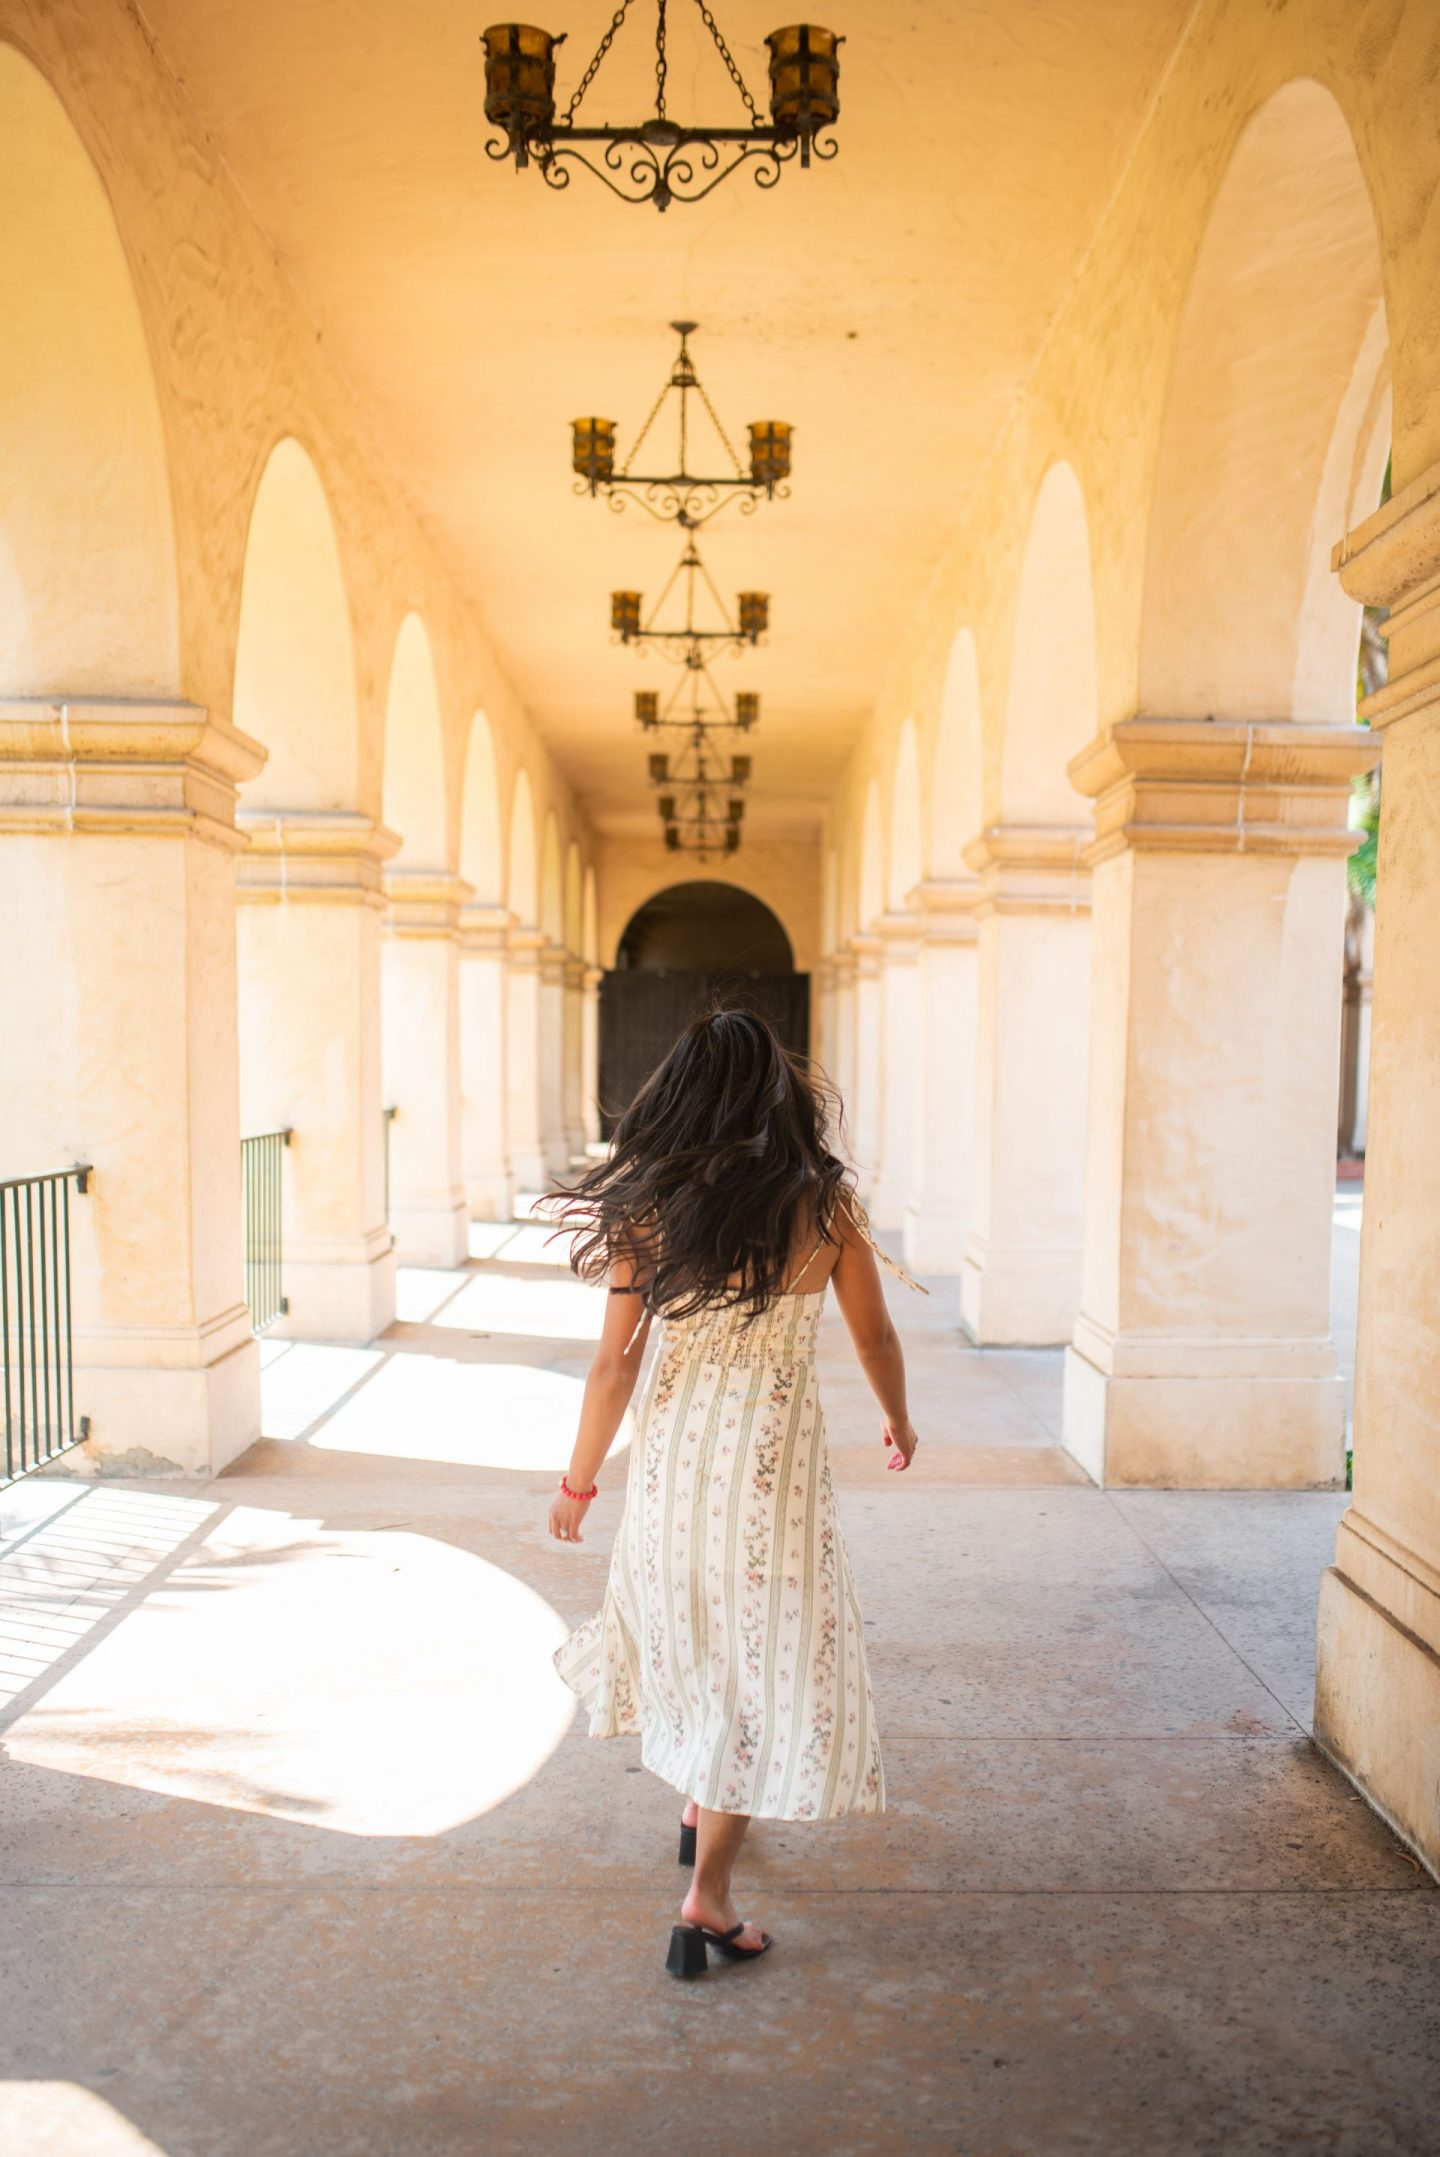 San Diego - Balboa park - How to Prepare for Q3 as an influencer - tips for influencers and content creators - how to prepare for the holiday season as a content creator - Emma's Edition